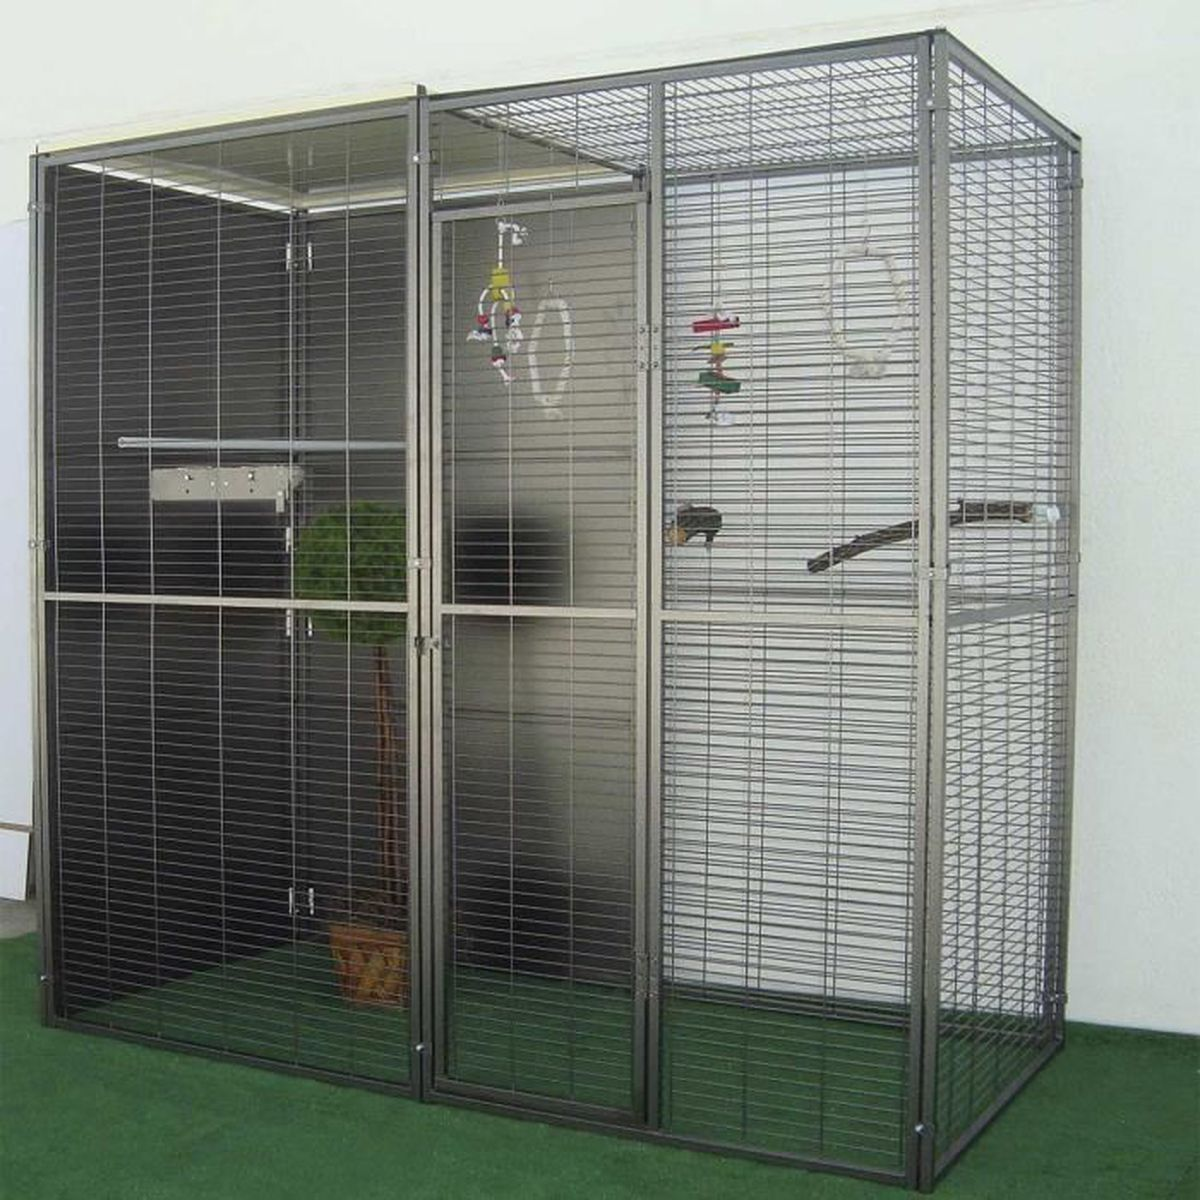 voli re de jardin 2m toit mixte pour perroquet gris achat vente voli re cage oiseau. Black Bedroom Furniture Sets. Home Design Ideas